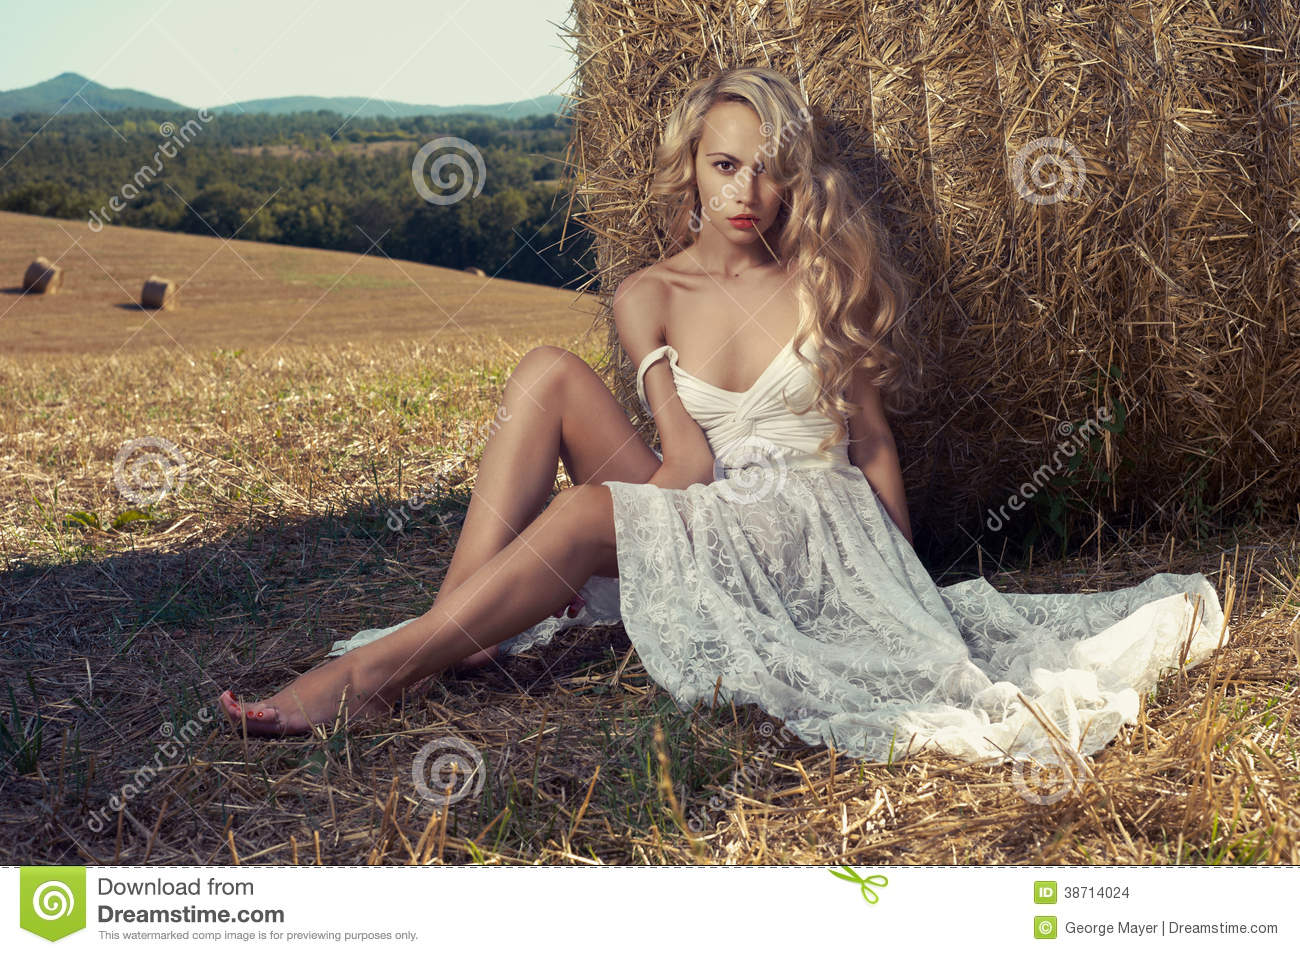 hayfield online dating Hayfield's best free dating site 100% free online dating for hayfield singles at mingle2com our free personal ads are full of single women and men in hayfield looking for serious relationships, a little online flirtation, or new friends to go out with.